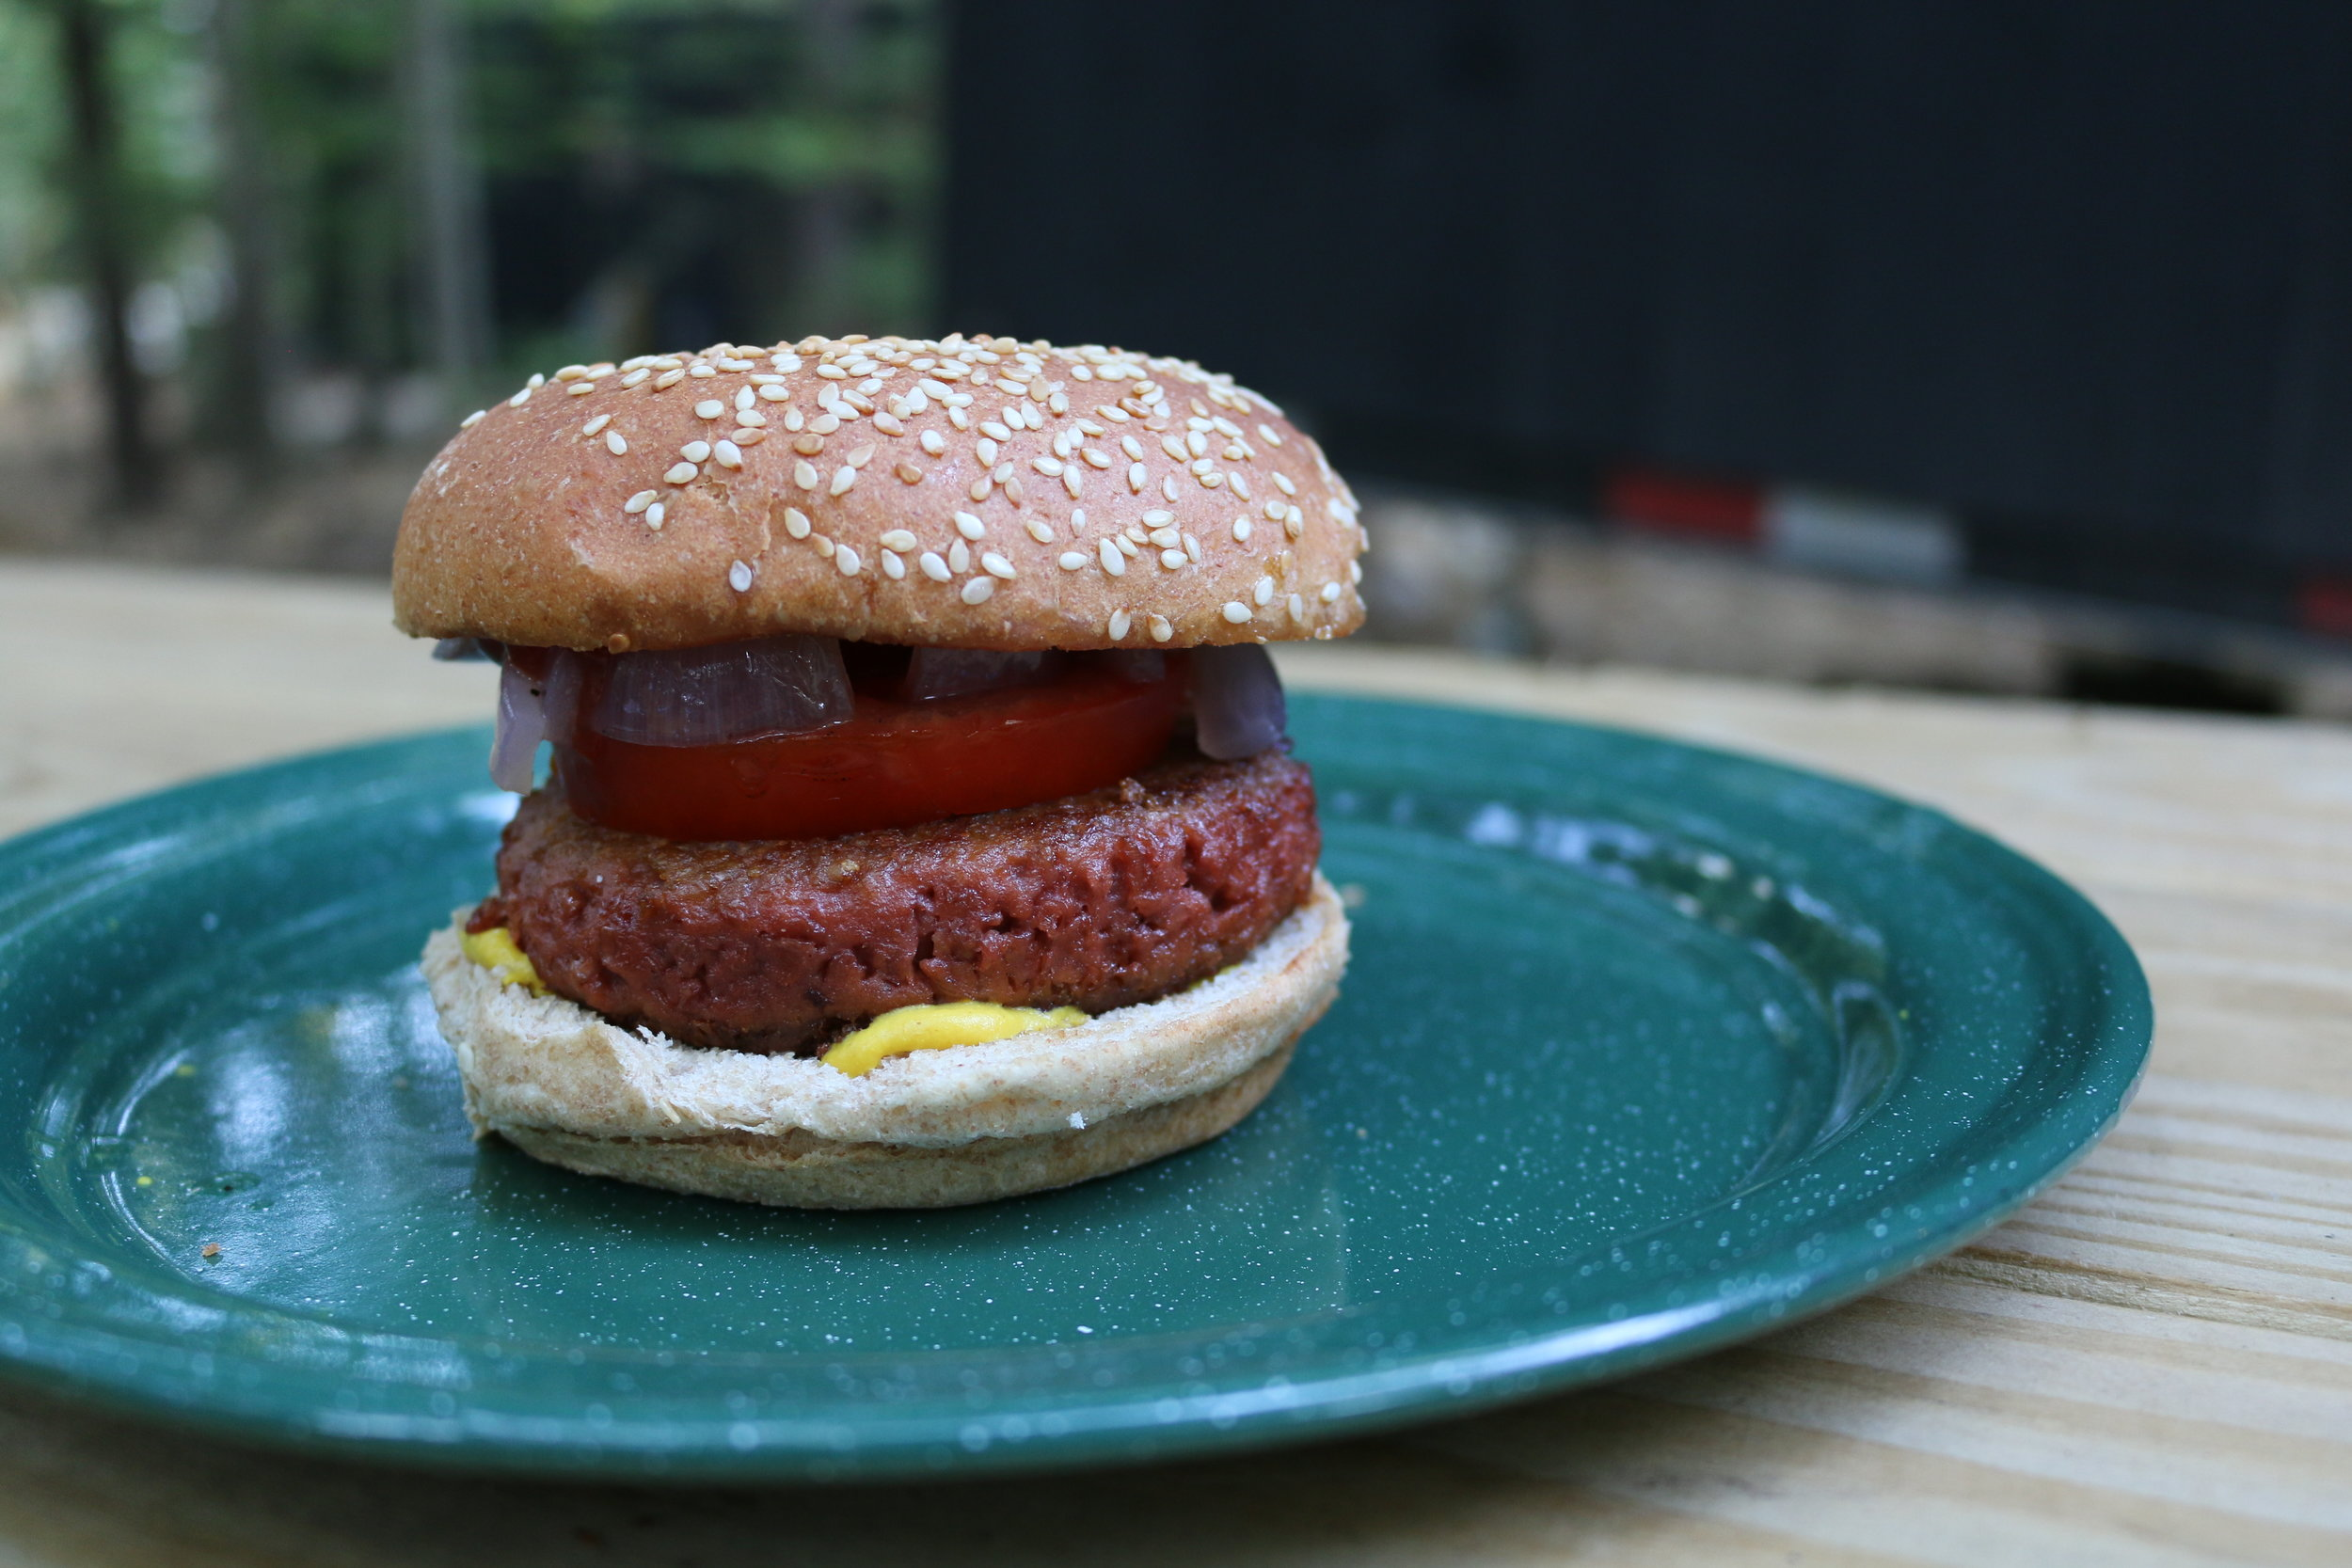 Burger with Beyond Meat patty